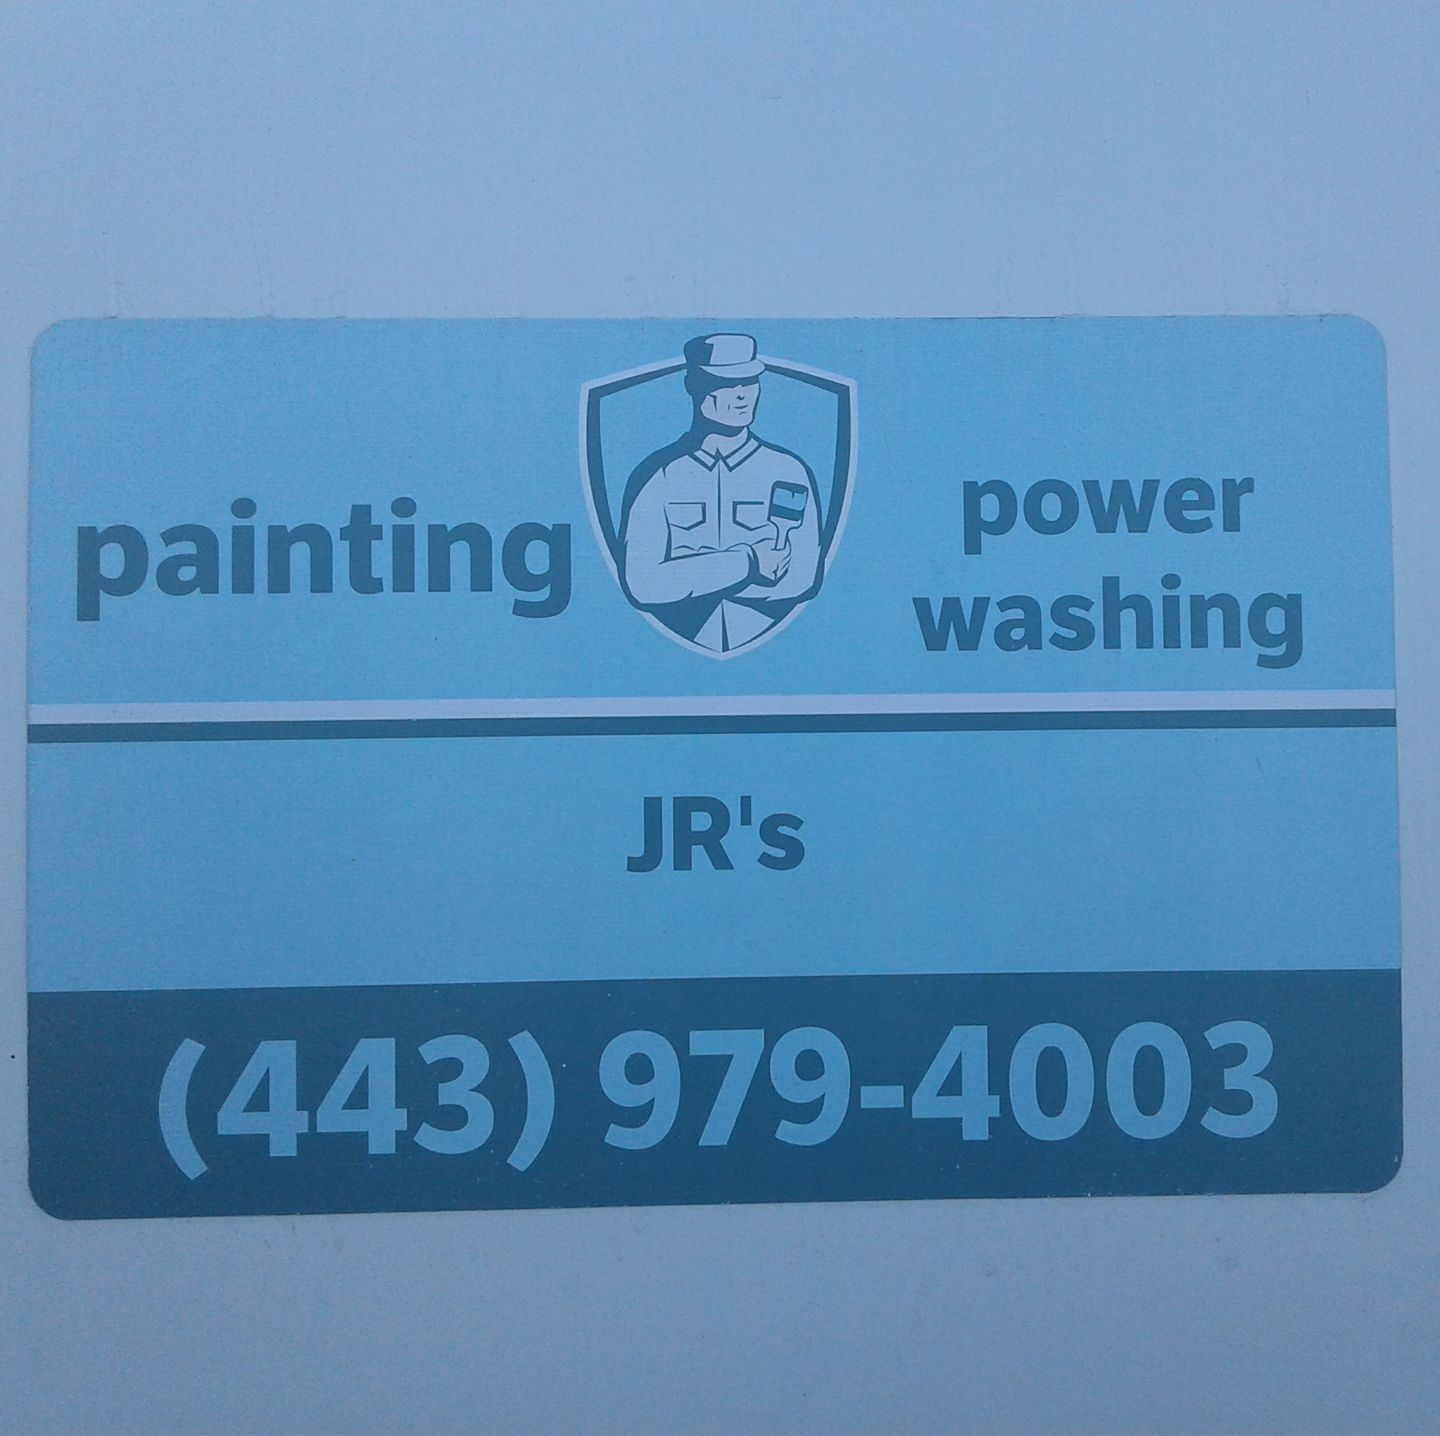 Jr's Painting And Power Washing LLC